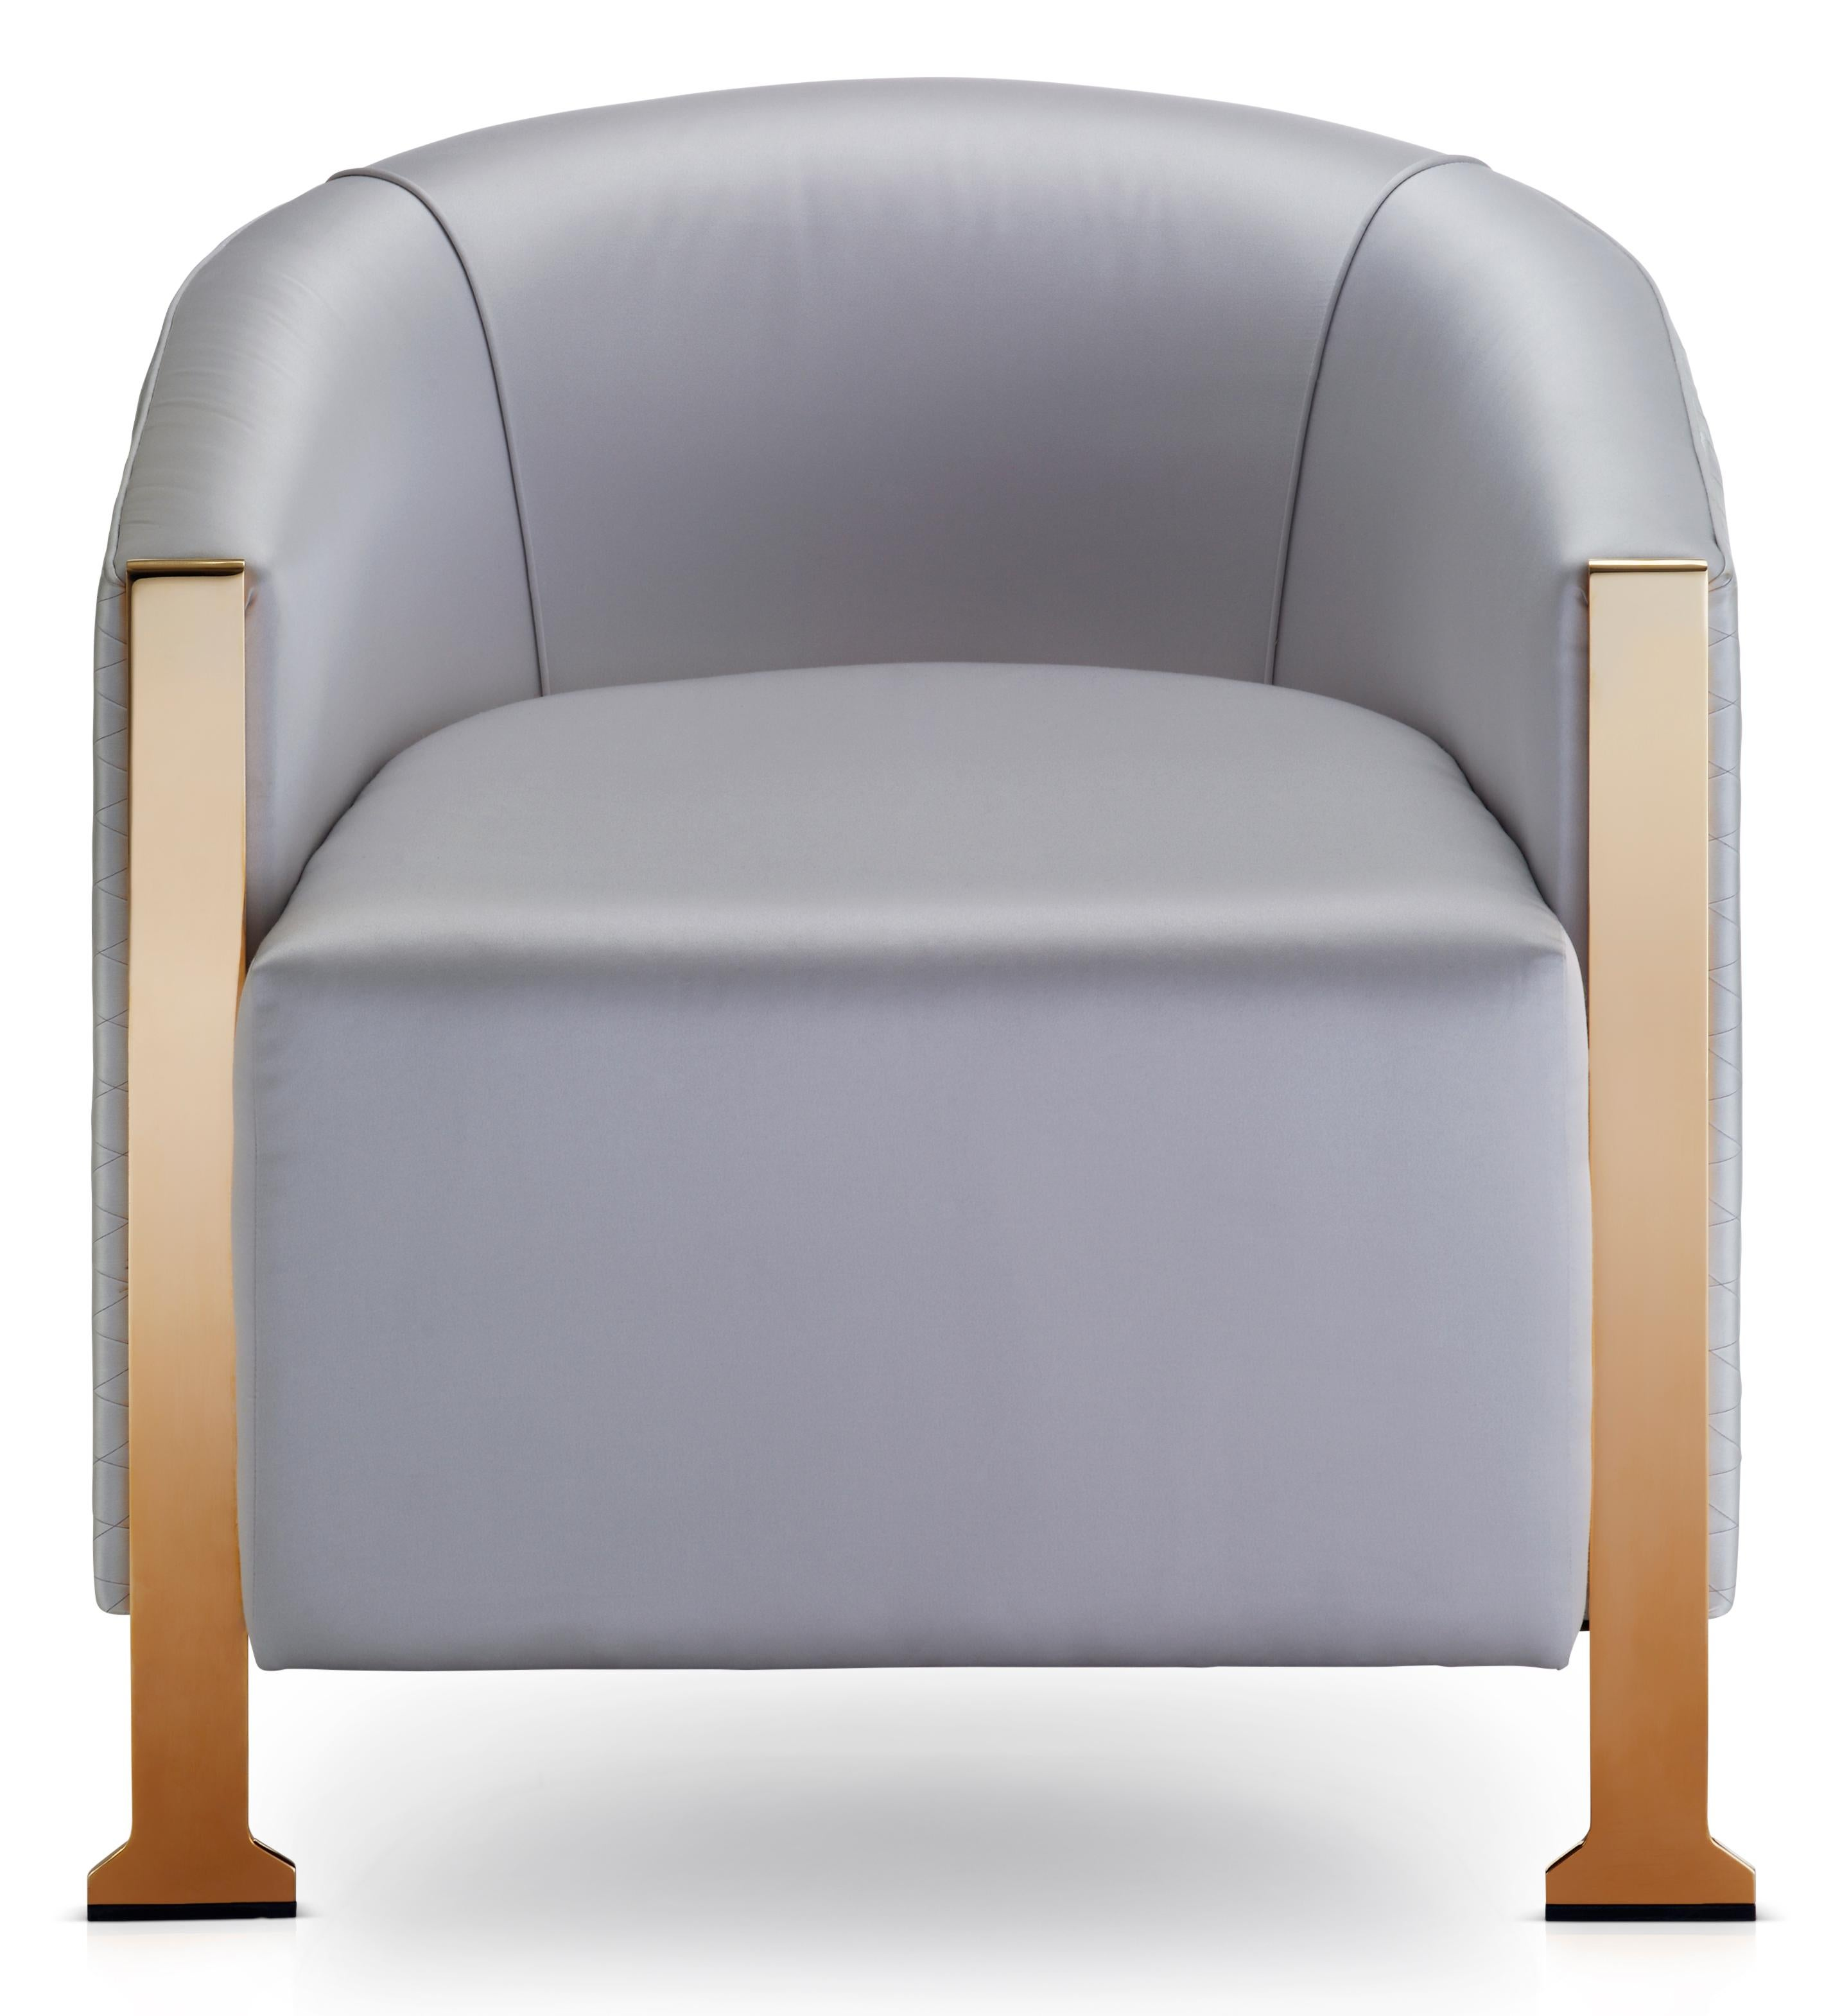 chair stands on bonded leather dusk tub formal modern armchair sculptural metal legs for this beautiful curved polished brass to bring a touch of